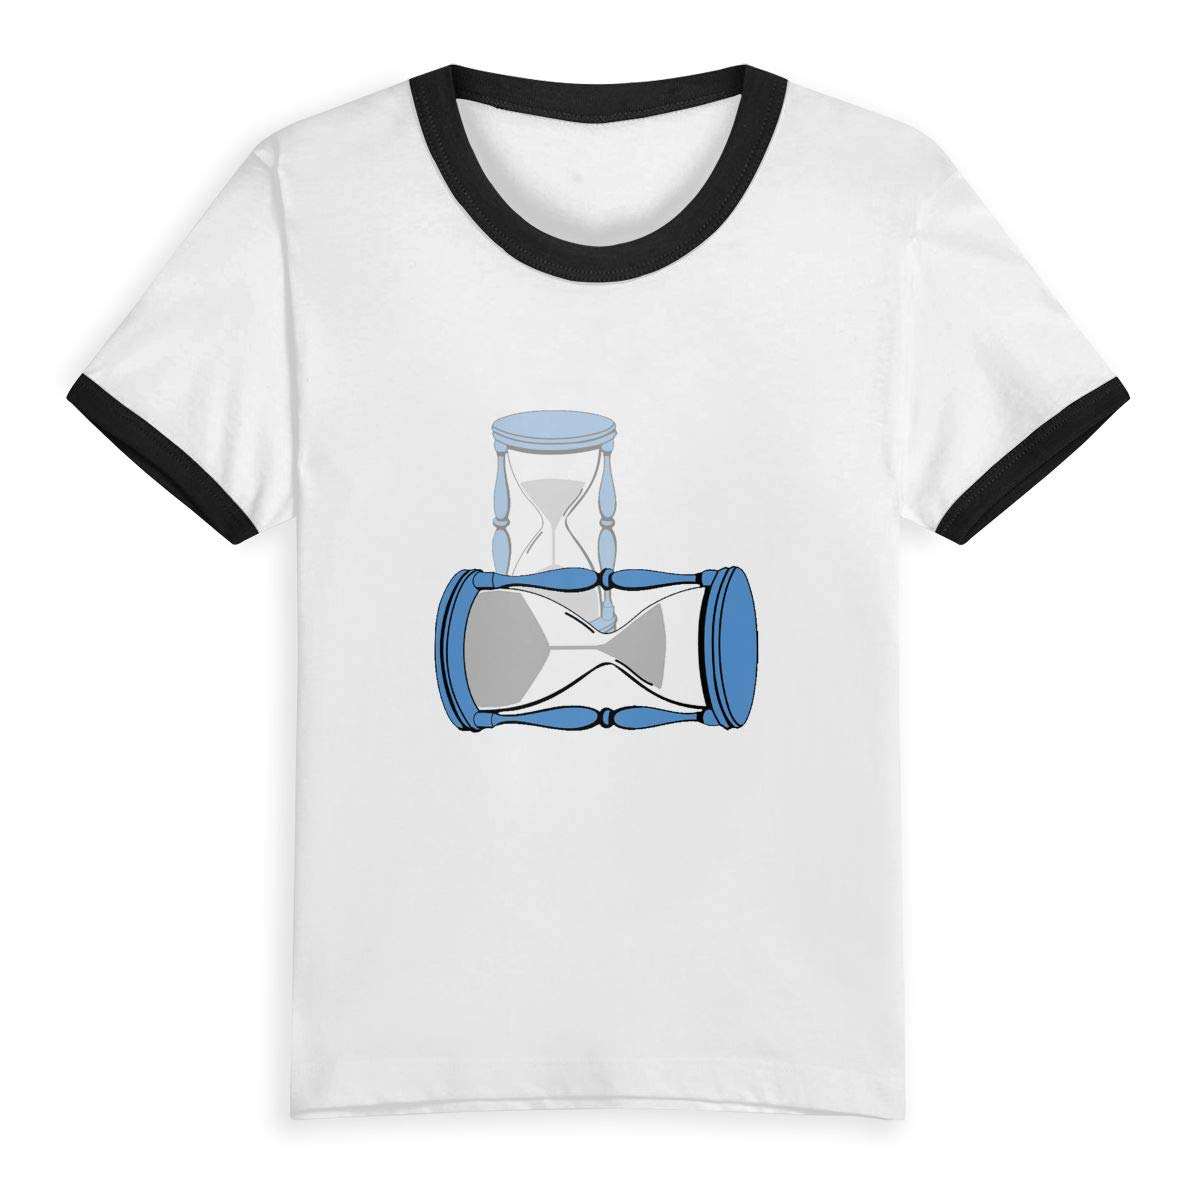 Hourglass Kids Boys Girls Round Neck Short Sleeve Tee Jersey Contrast Color Tshirt by CZHYMYZ